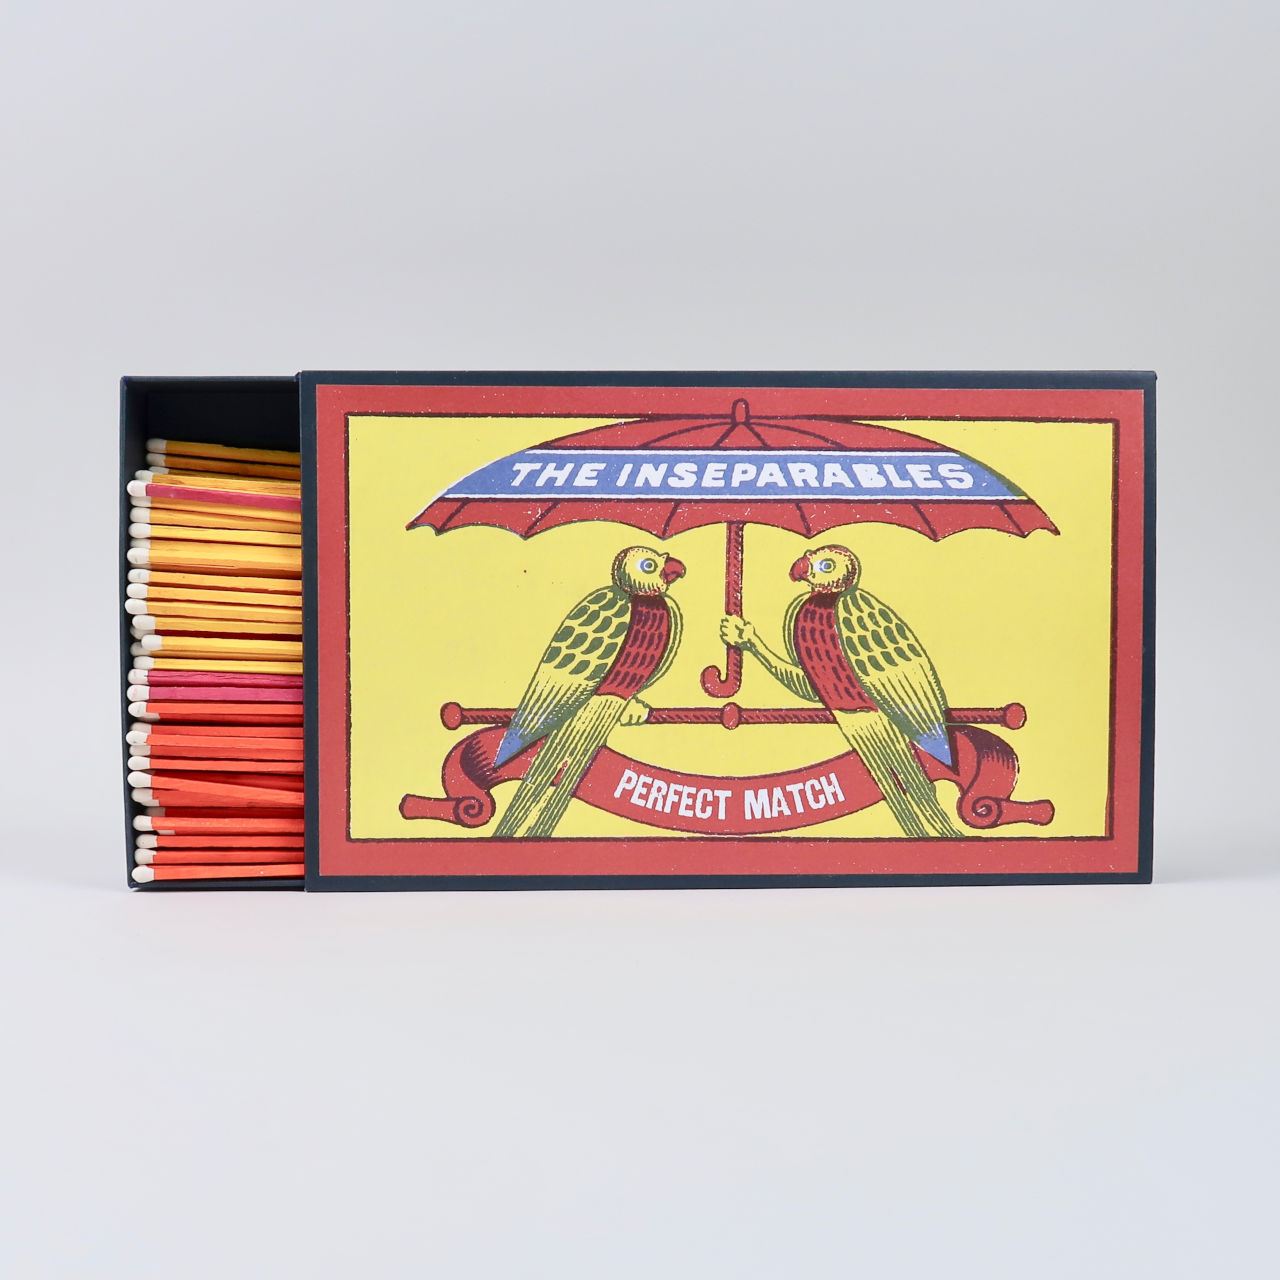 Giant Box of Matches - The Inseparables